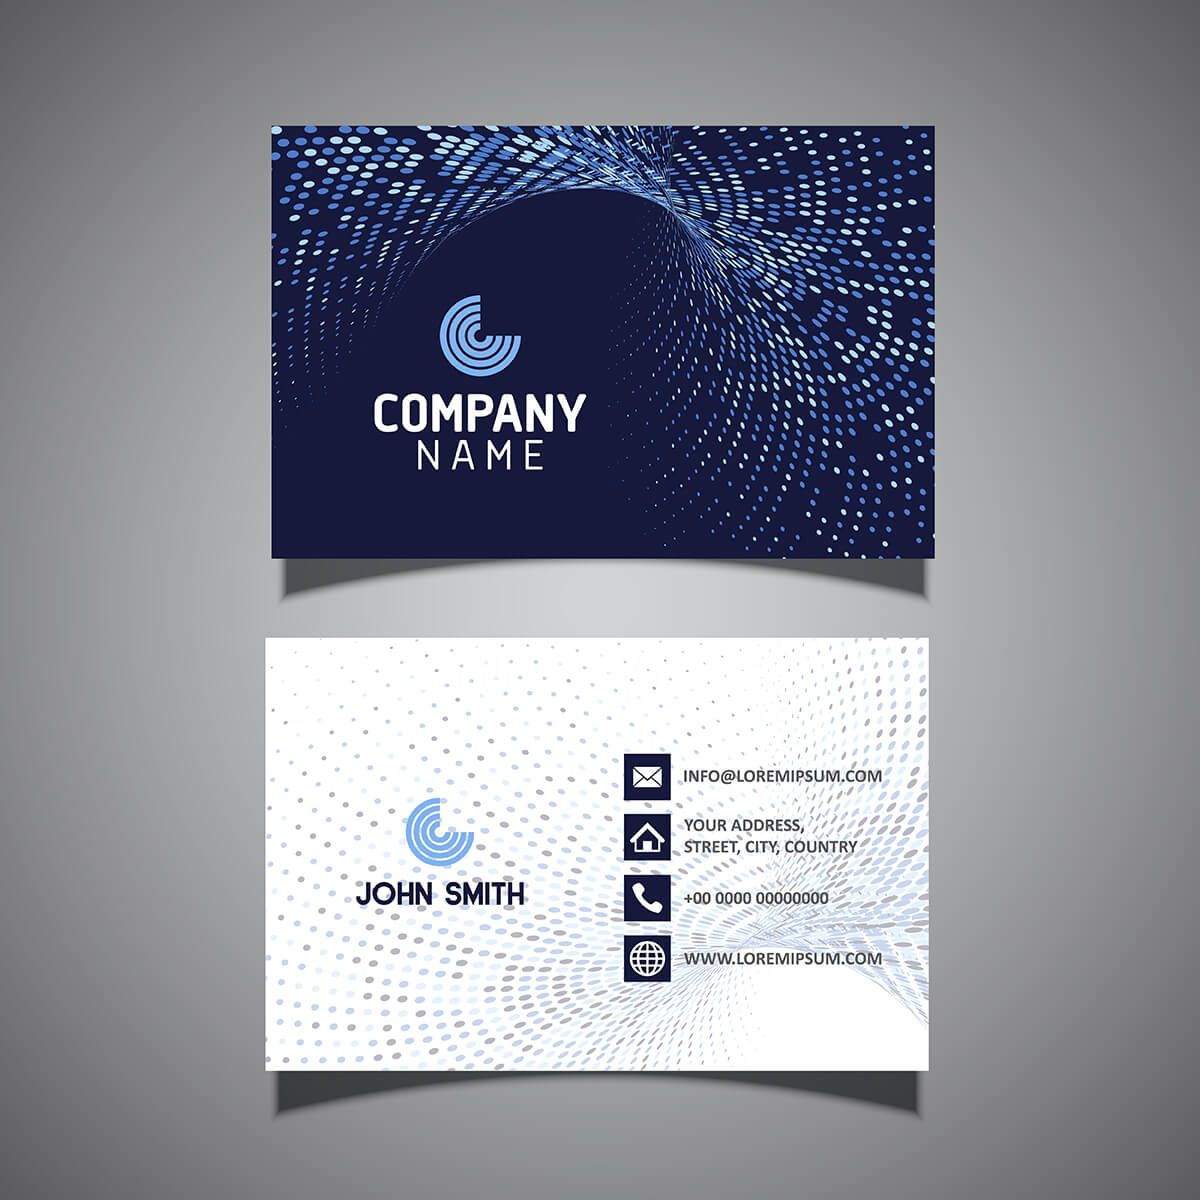 Business card sample design http://49designers.com/portfolio/2/1 ...